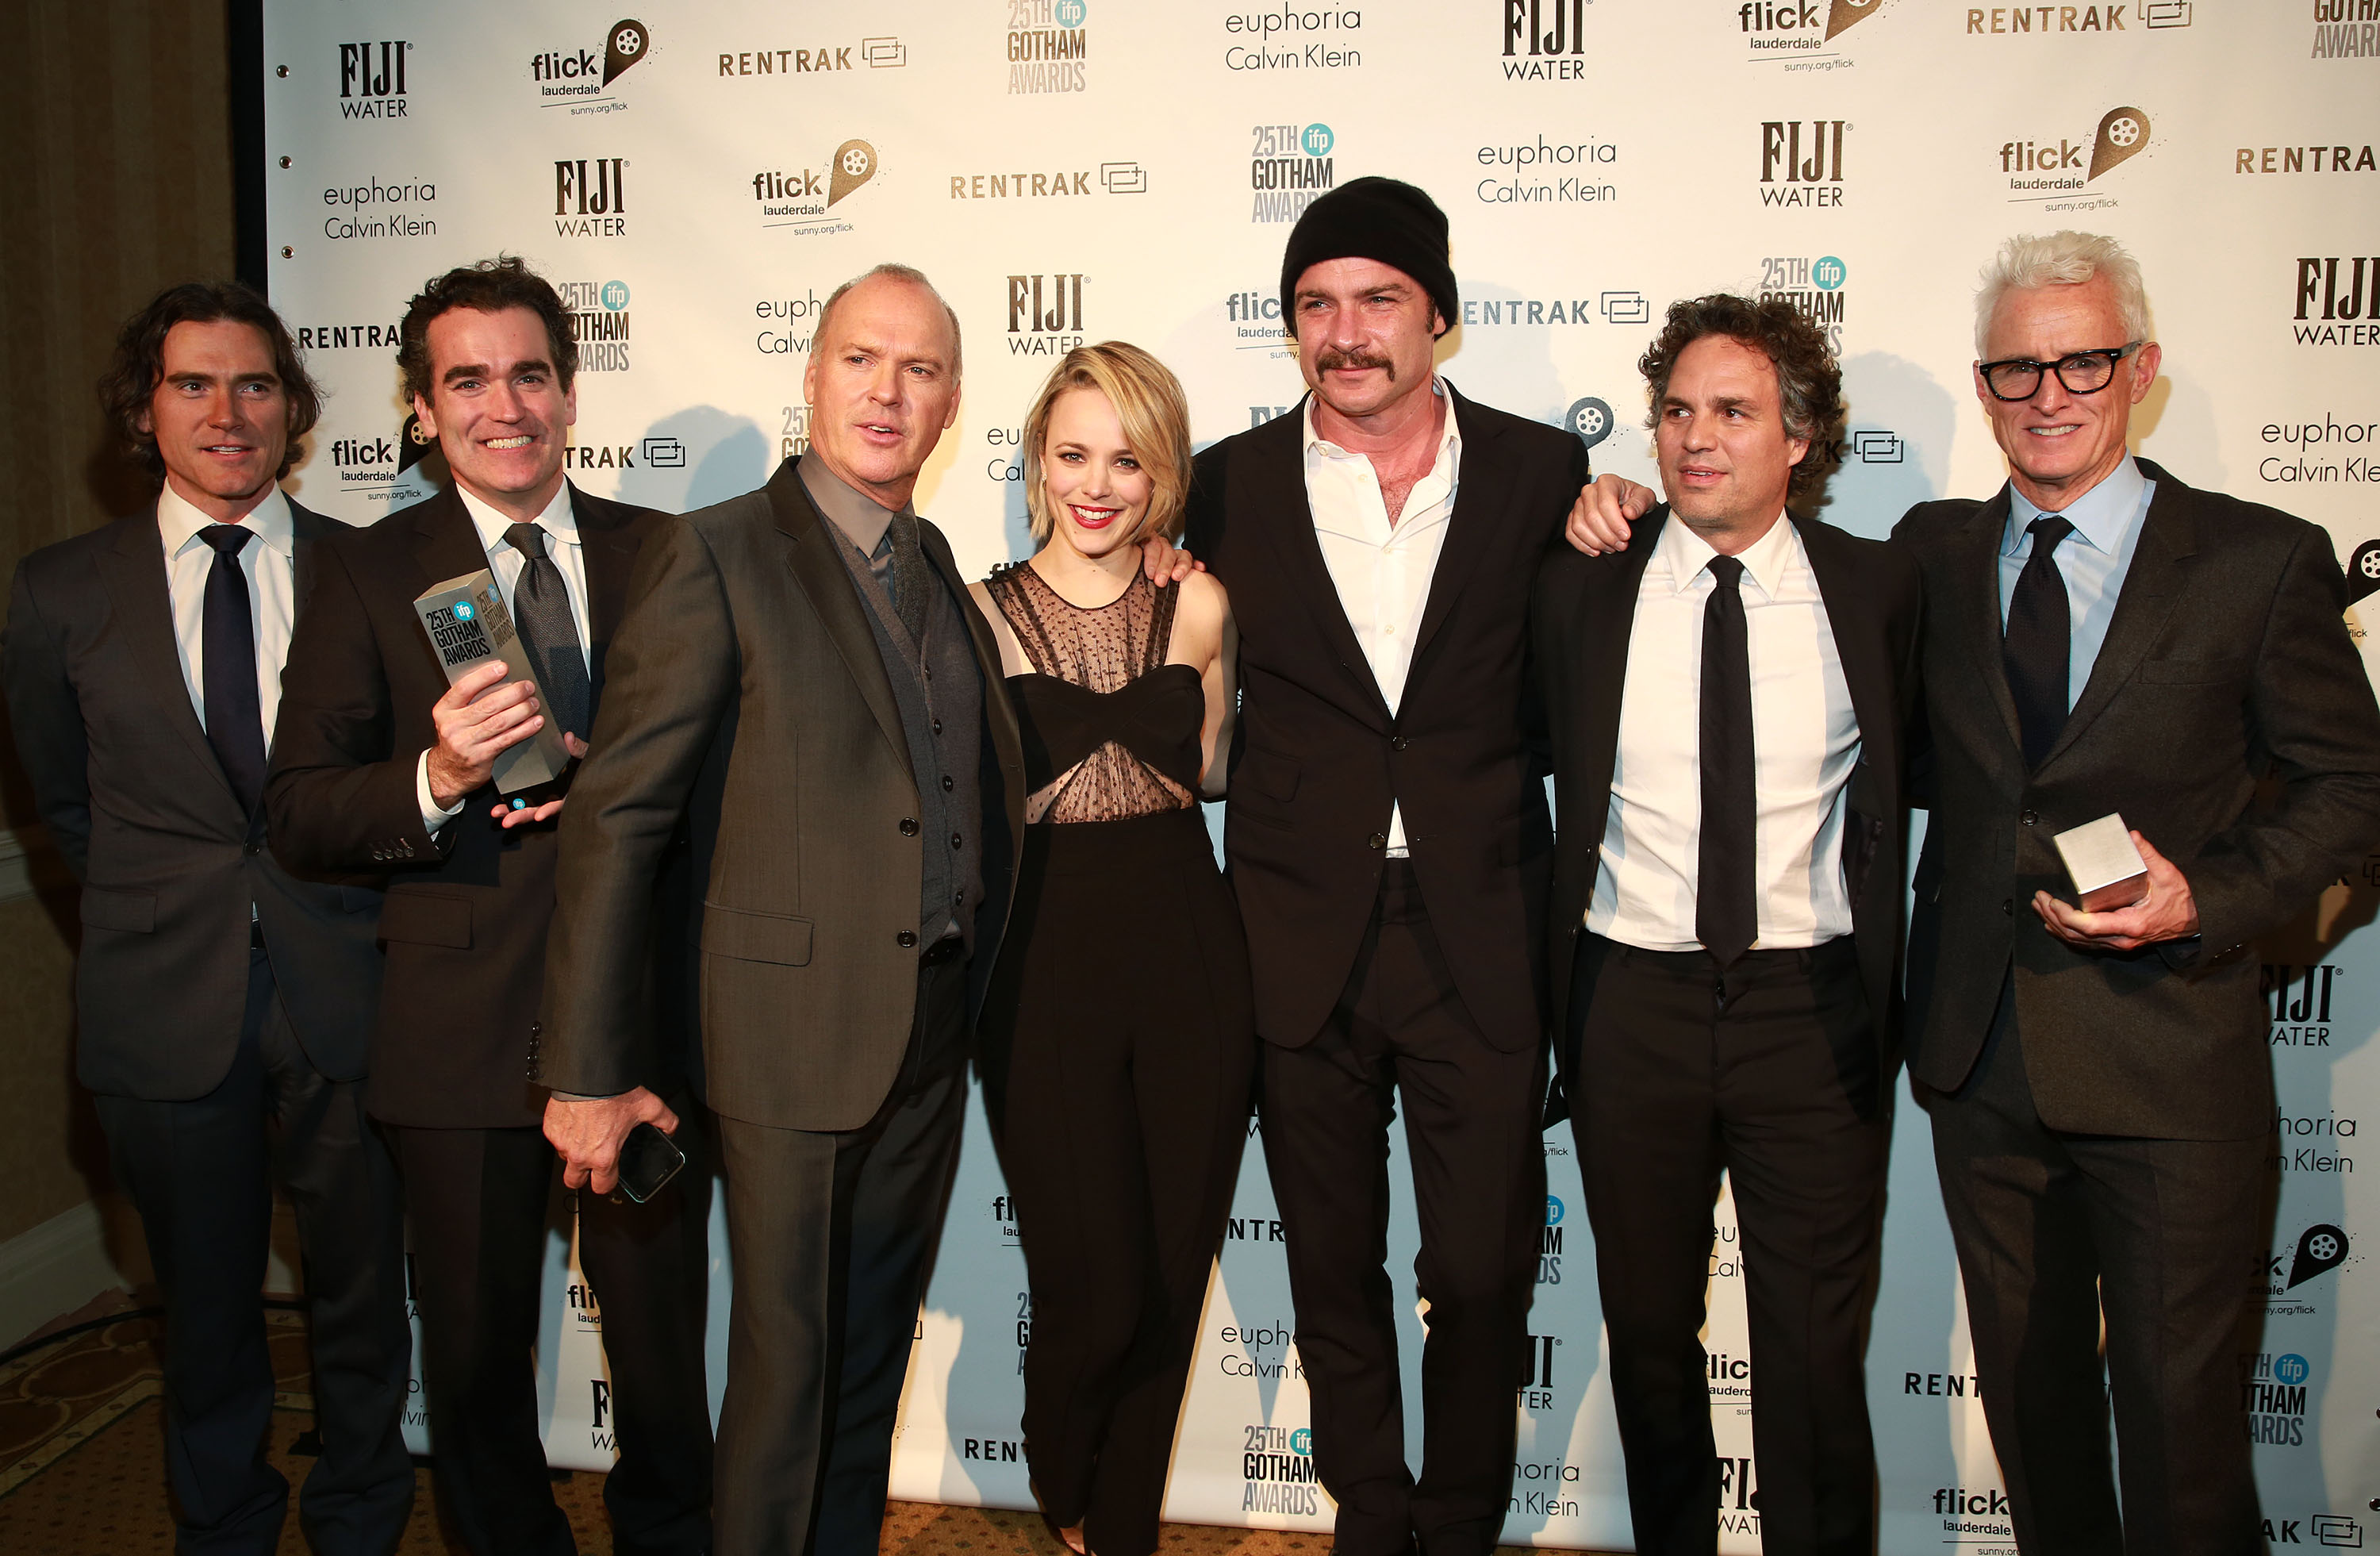 Cast of Spotlight, named best feature, screenplay and acting ensemble, pose at the IFP Gotham Independent Film Awards 2015 at Cipriani Wall Street, in New York, on Monday, November 30, 2015. Photo: Invision for Greater Fort Lauderdale Convention and Visitors Bureau via AP